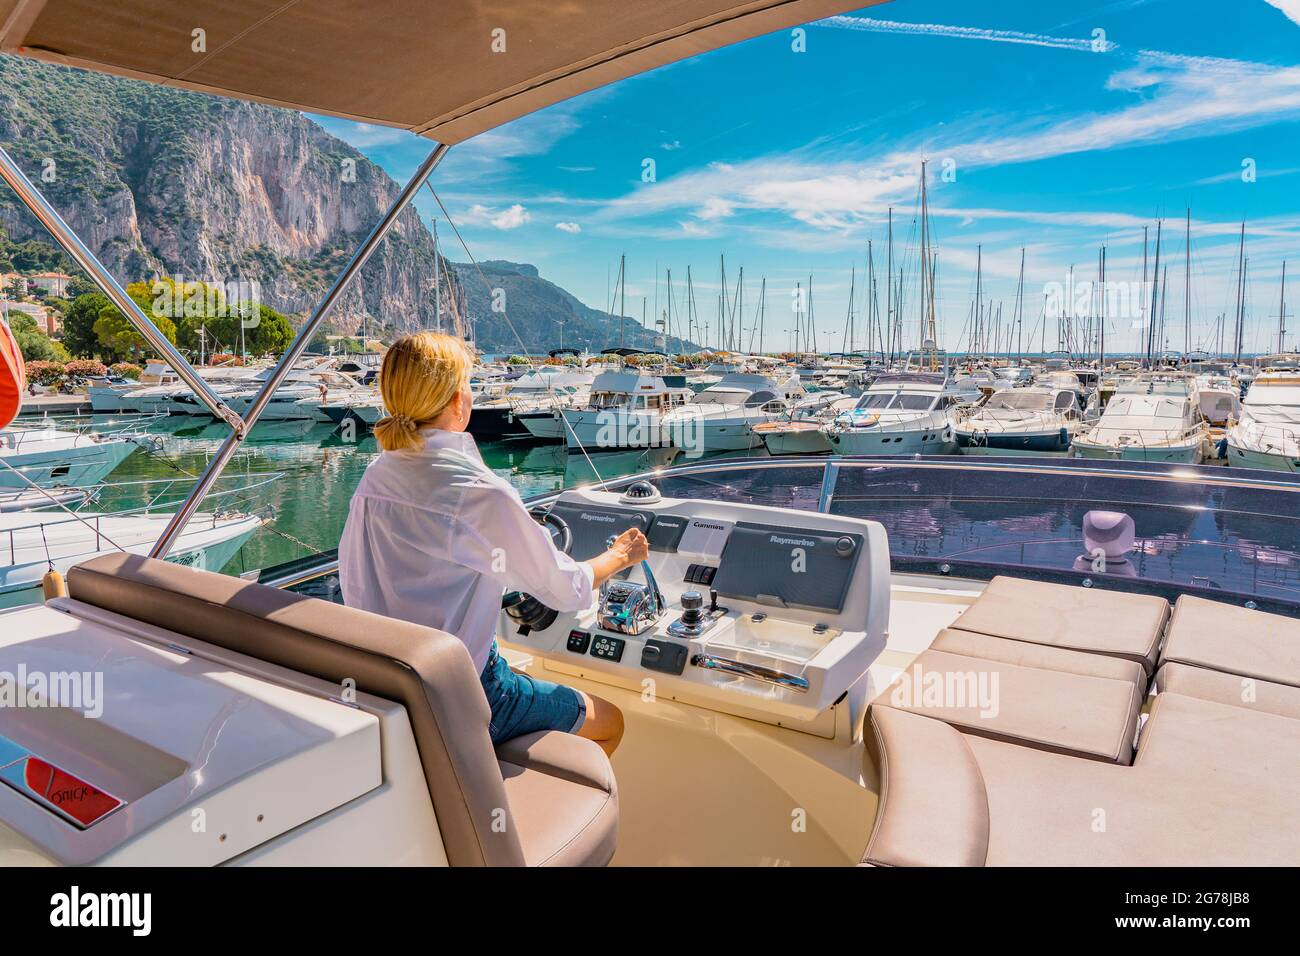 Sailing at the sea. Beautiful blond woman driving yacht. Adult woman model in a white shirt sitting at the wheel of the yacht and begin to drive luxury boat from the port. Young woman driving yacht.  Stock Photo